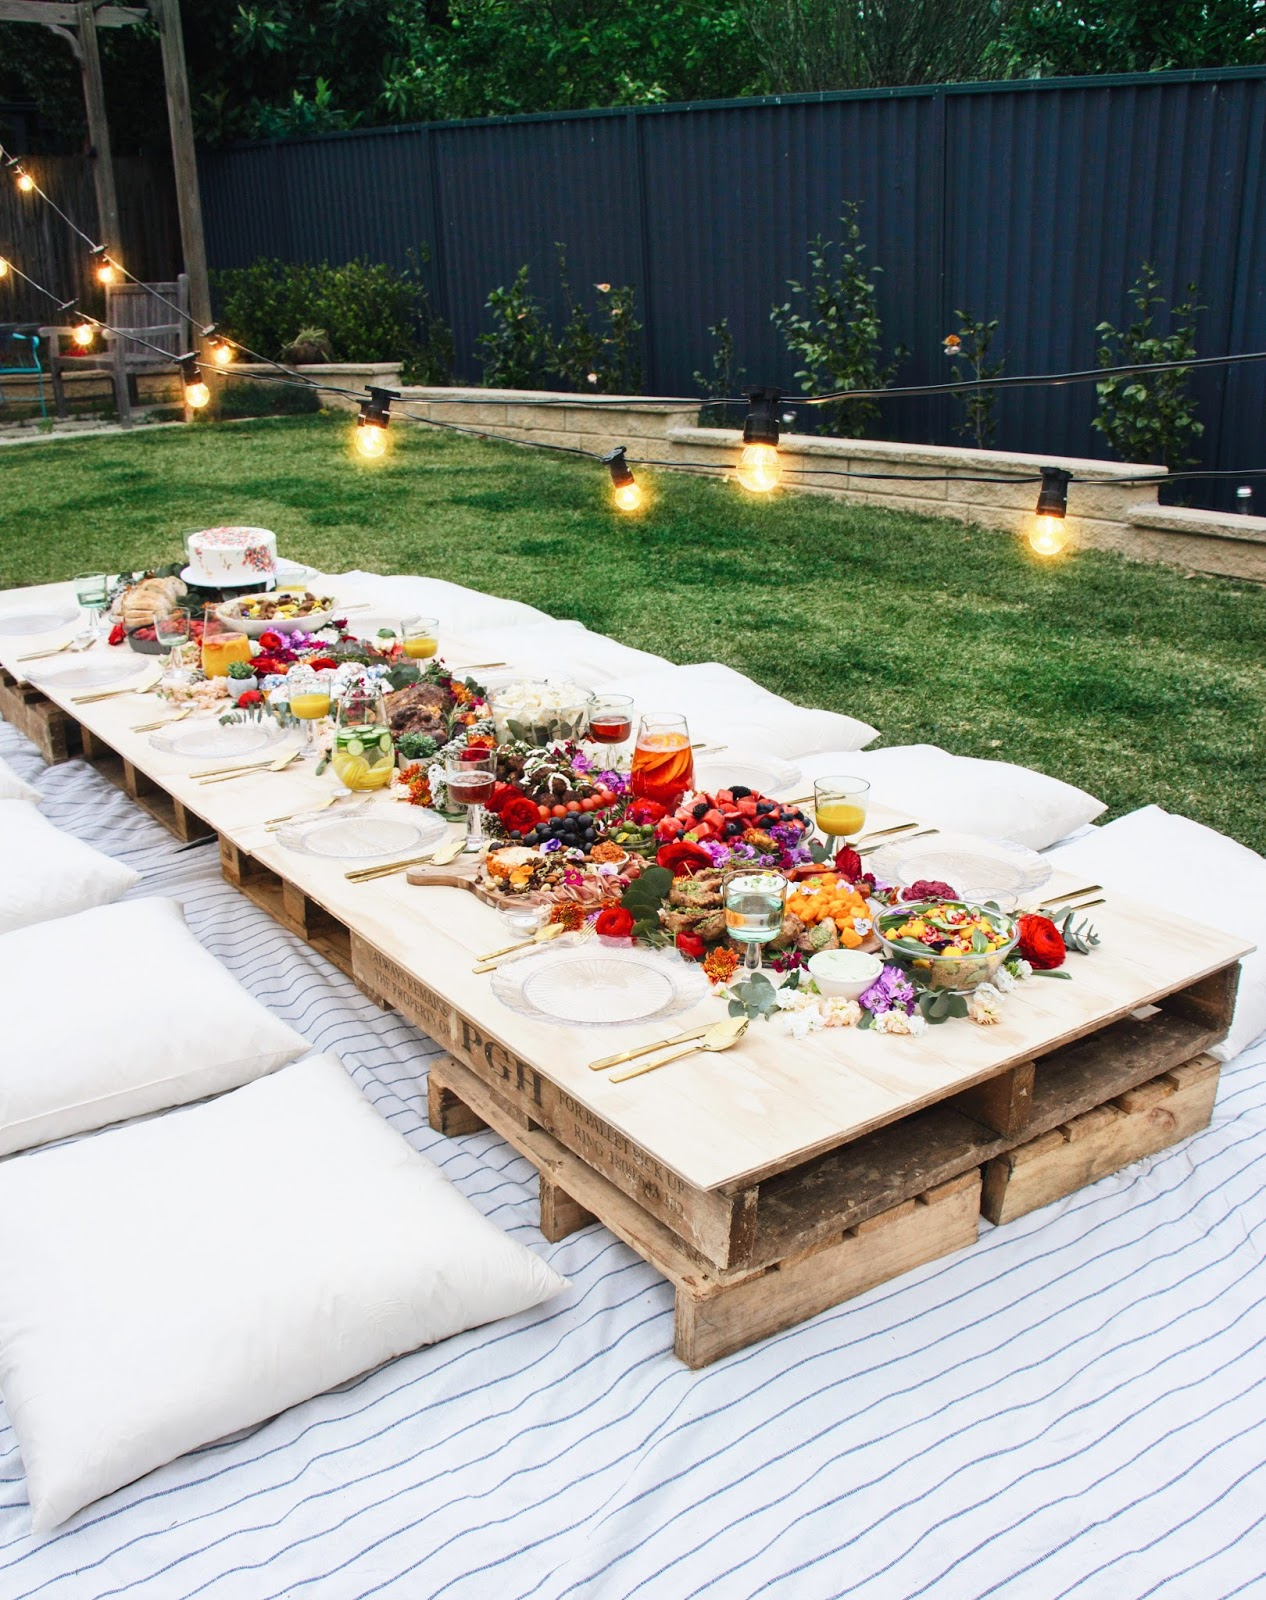 Must-See Backyard Party Ideas for a Relaxing and Luxurious Meeting backyard party ideas Must-See Backyard Party Ideas for a Relaxing and Luxurious Meeting Must See Backyard Party Ideas for a Relaxing and Luxurious Meeting 2